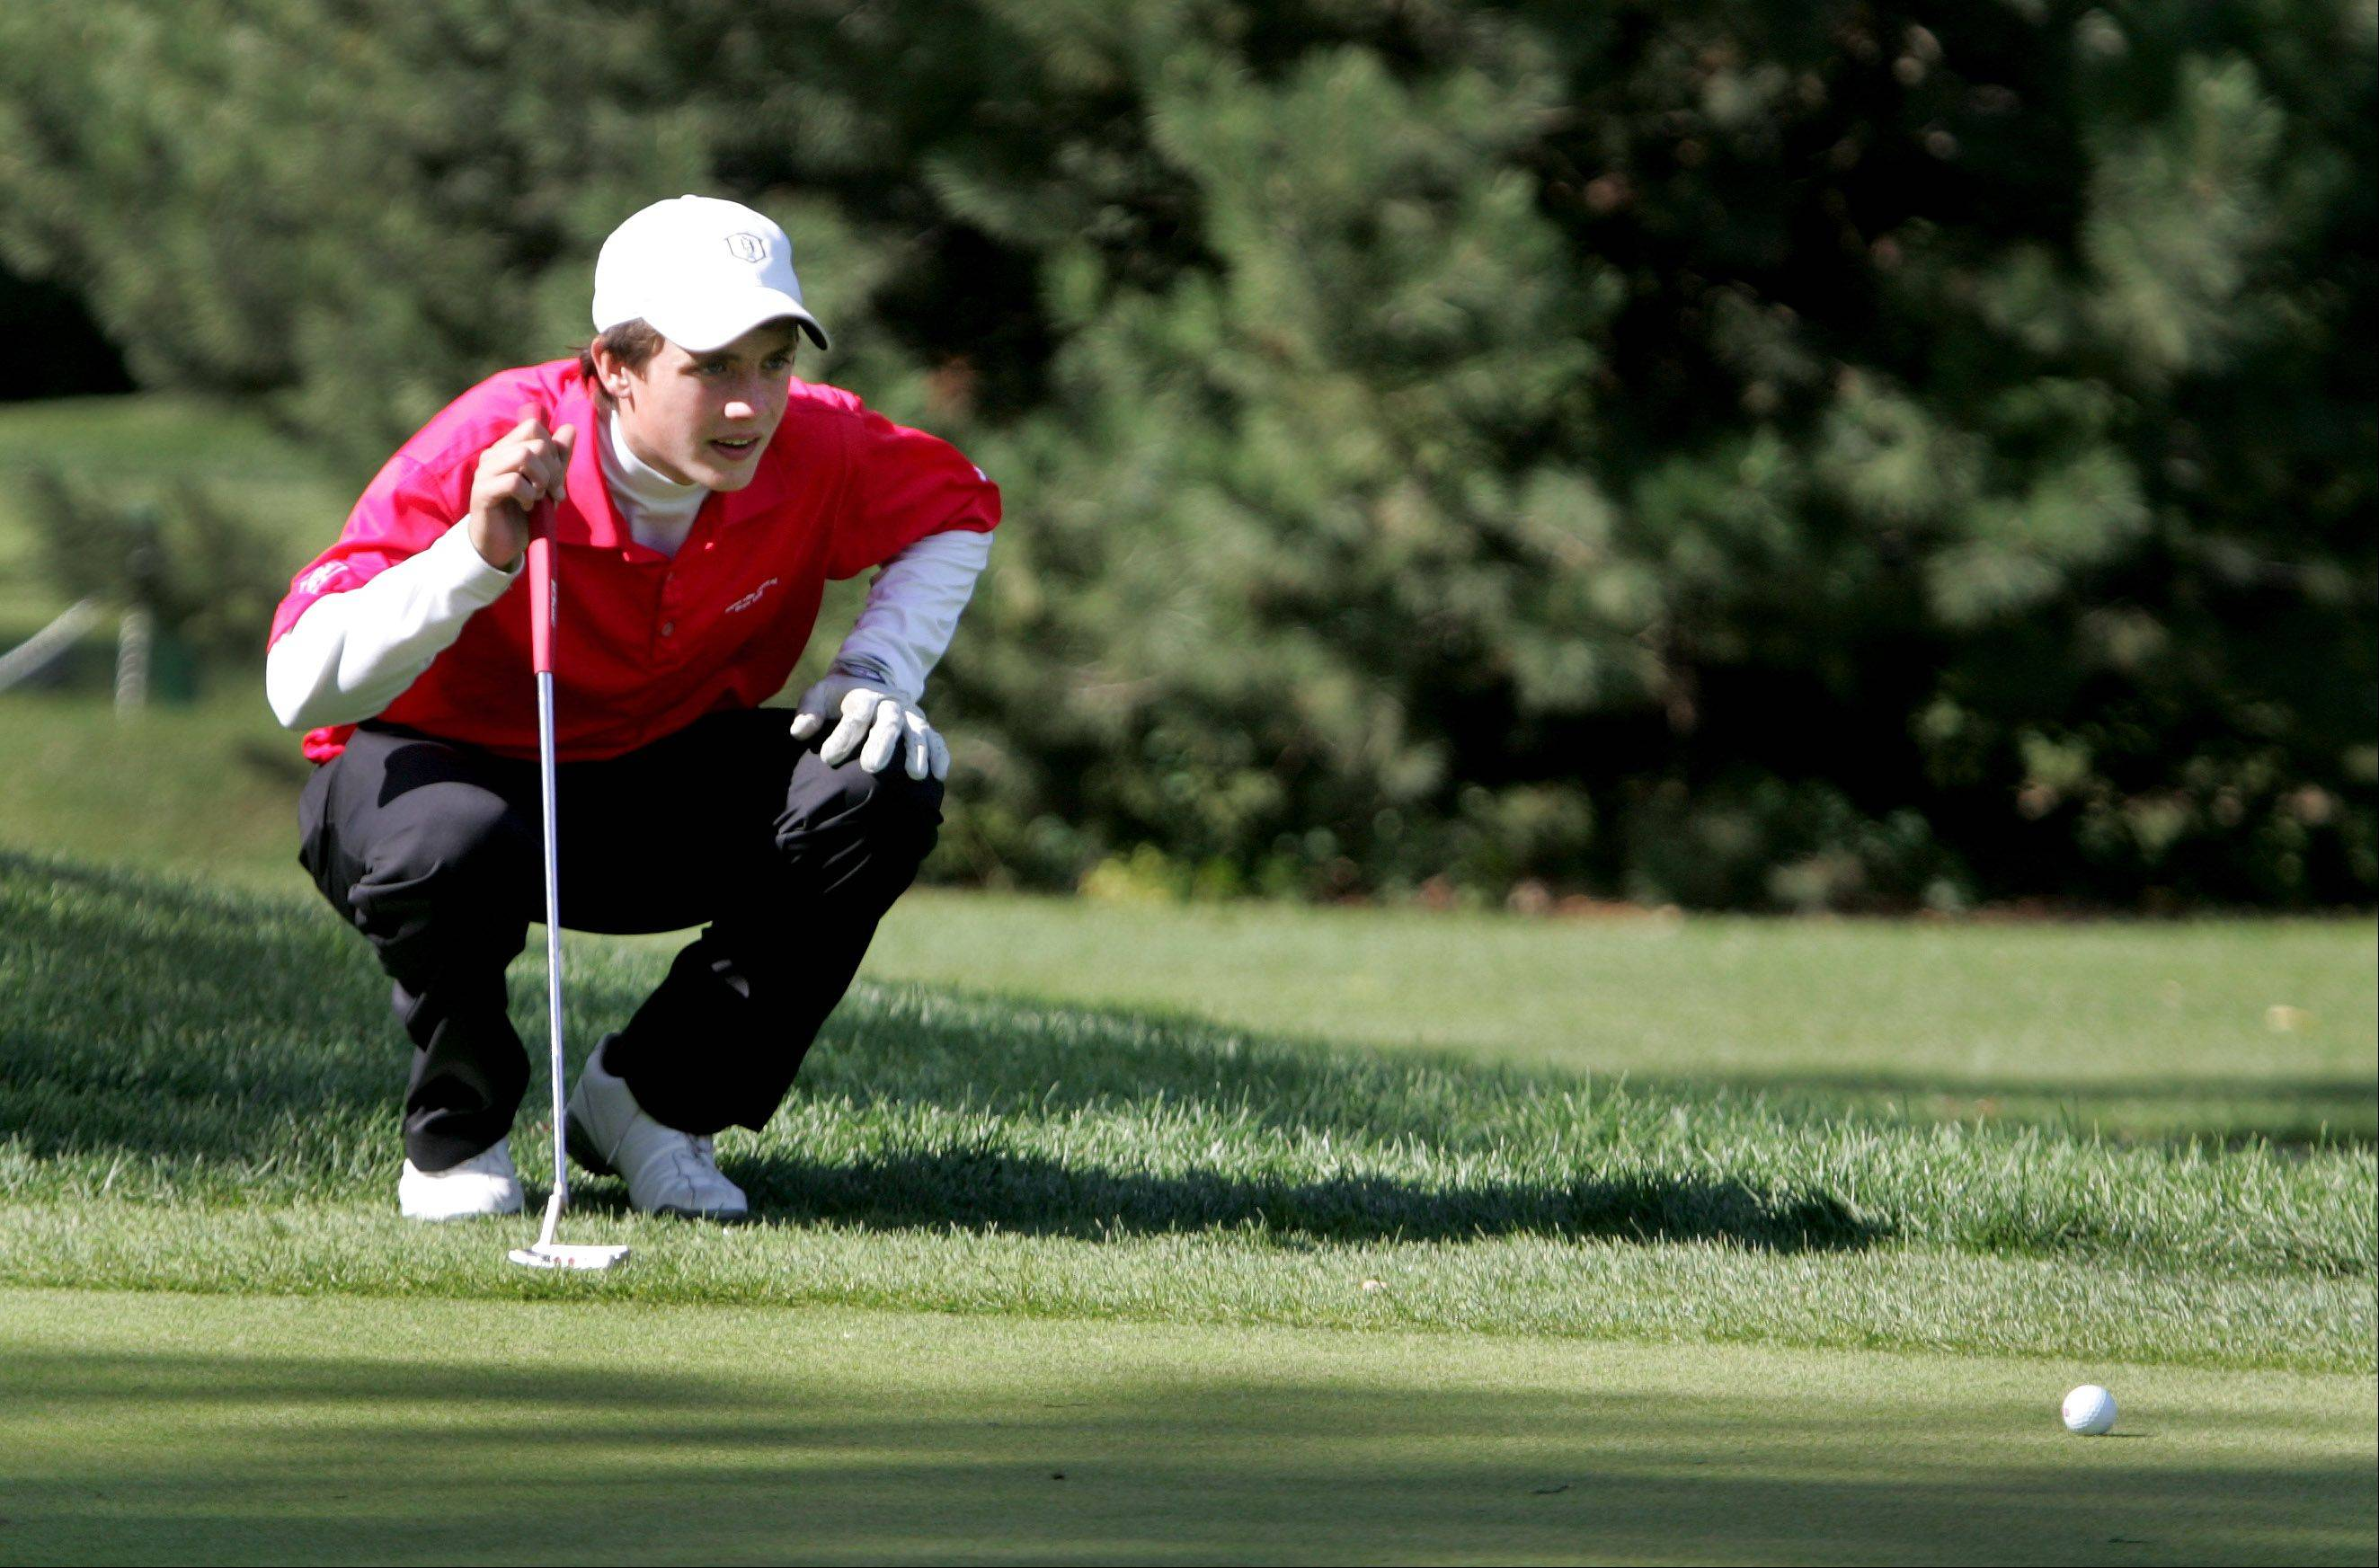 Peter Mandich of Naperville Central High School lines up a putt on the sixth green at the Bartlett Hills Golf Course during the 2012 DuPage Valley Conference.